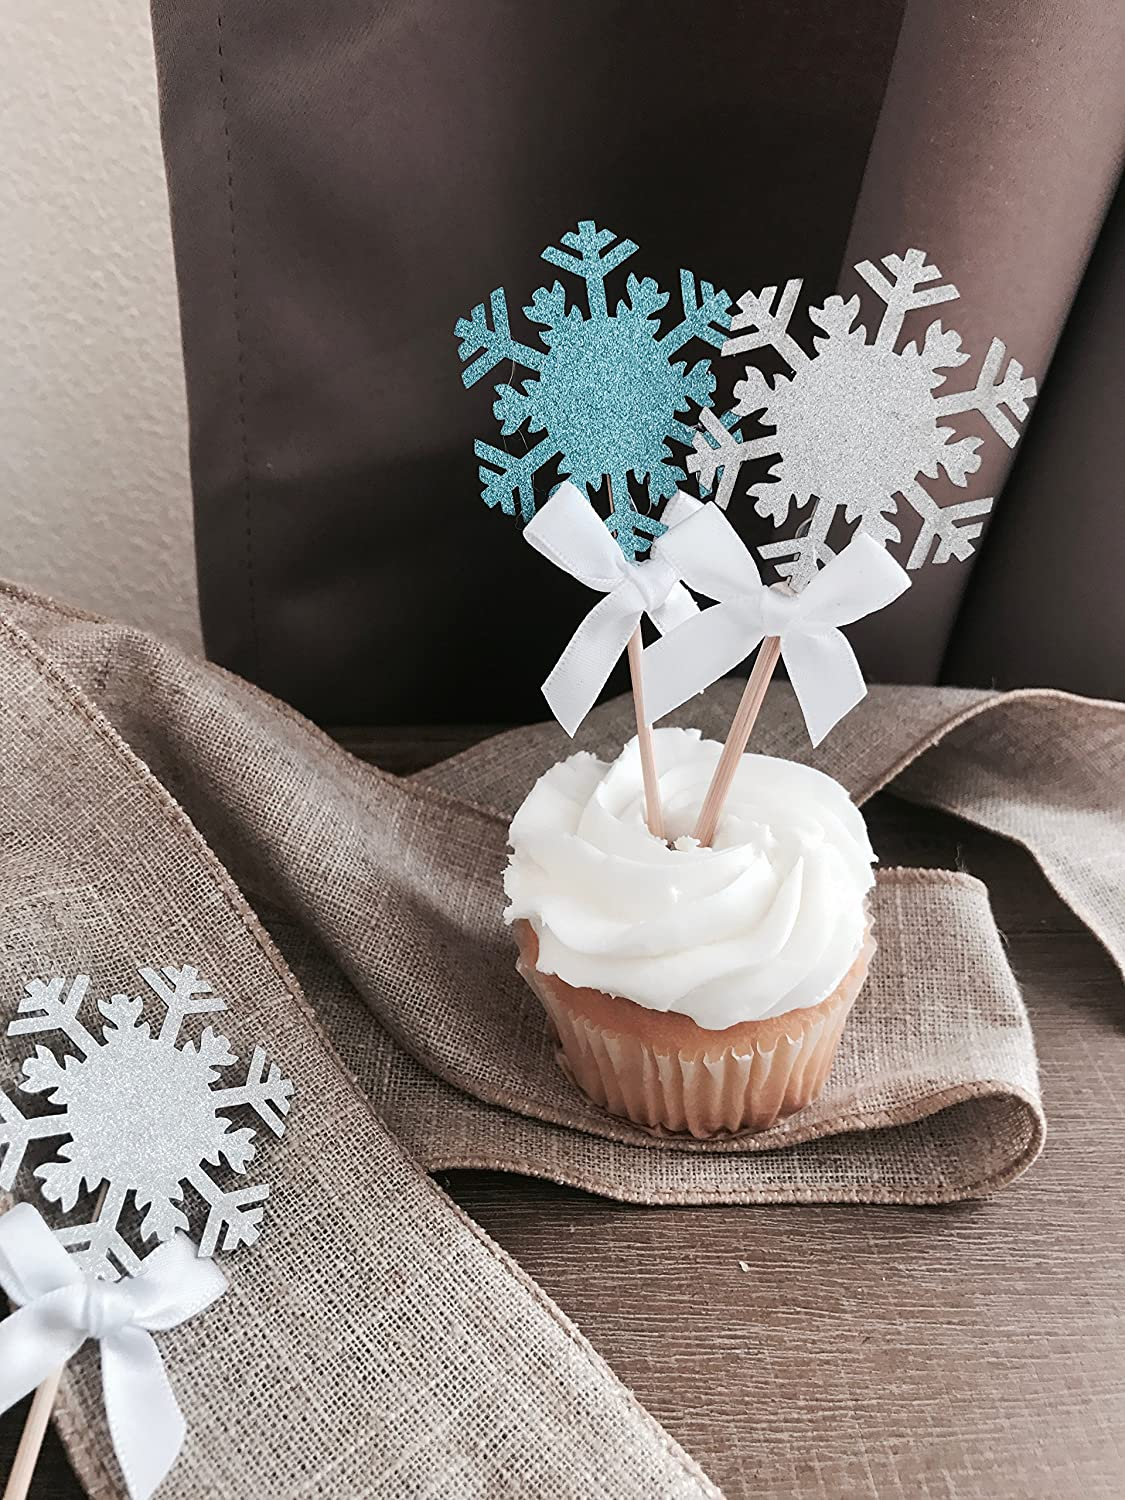 Sunrise Producton Winter Wonderland Party Decoration And Holiday Celebration -12 CT Light Blue /& Silver With White Bows Perfect For Christmas Party Snowflake Cupcake Toppers